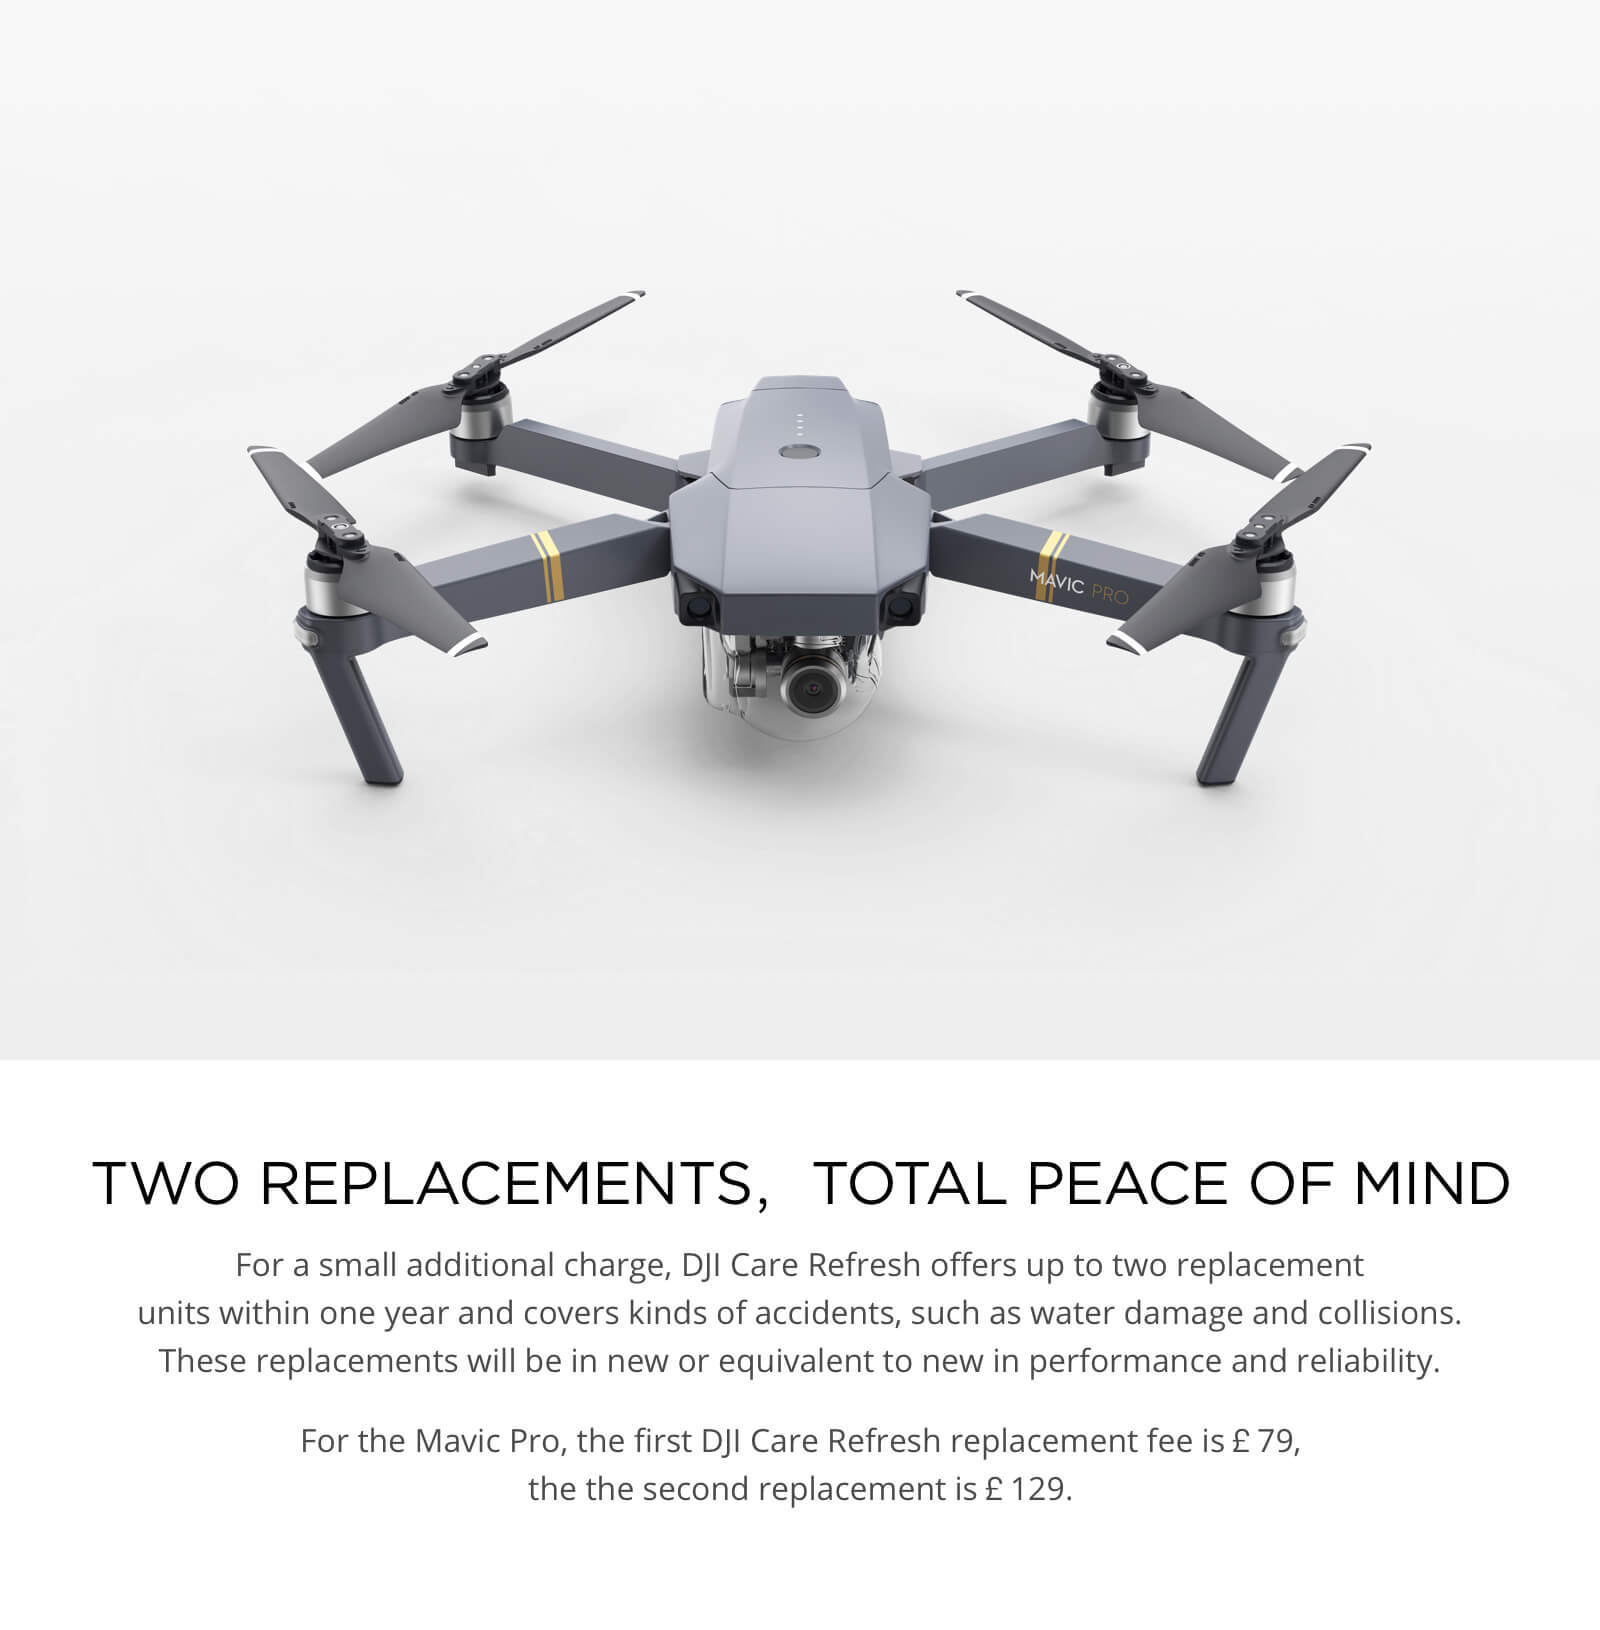 04Two%20Replacements%uFF0CTotal%20Peace%20of%20mind%20mavic%20pro.jpg